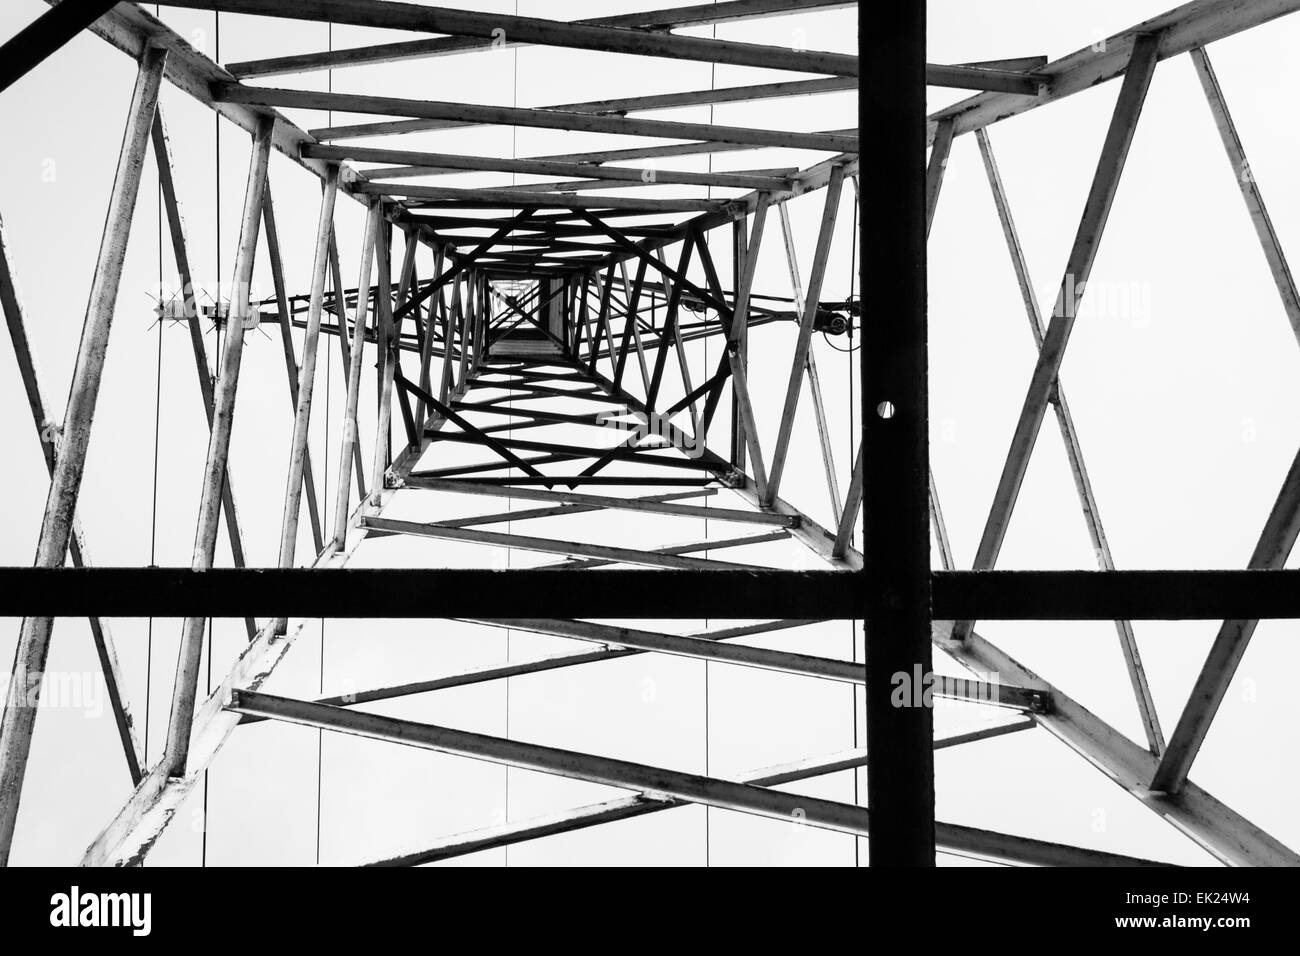 Photo of an electrical pillar taken from below. Composition based on rule of thirds. - Stock Image